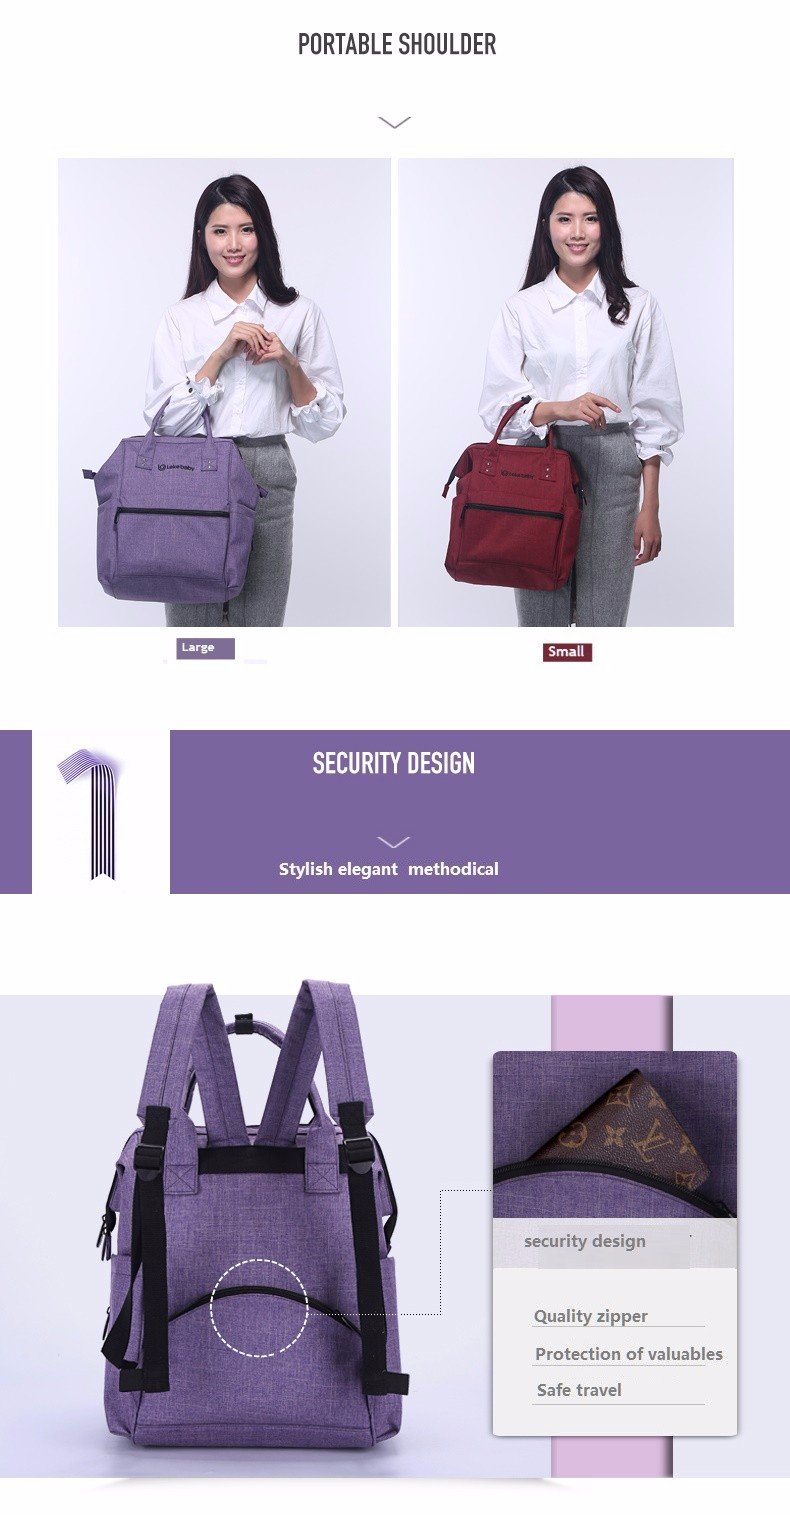 Lekebaby Diaper Bags Large Size (22L Hand Carry) Multi functional suitable for Daddy & Mummy